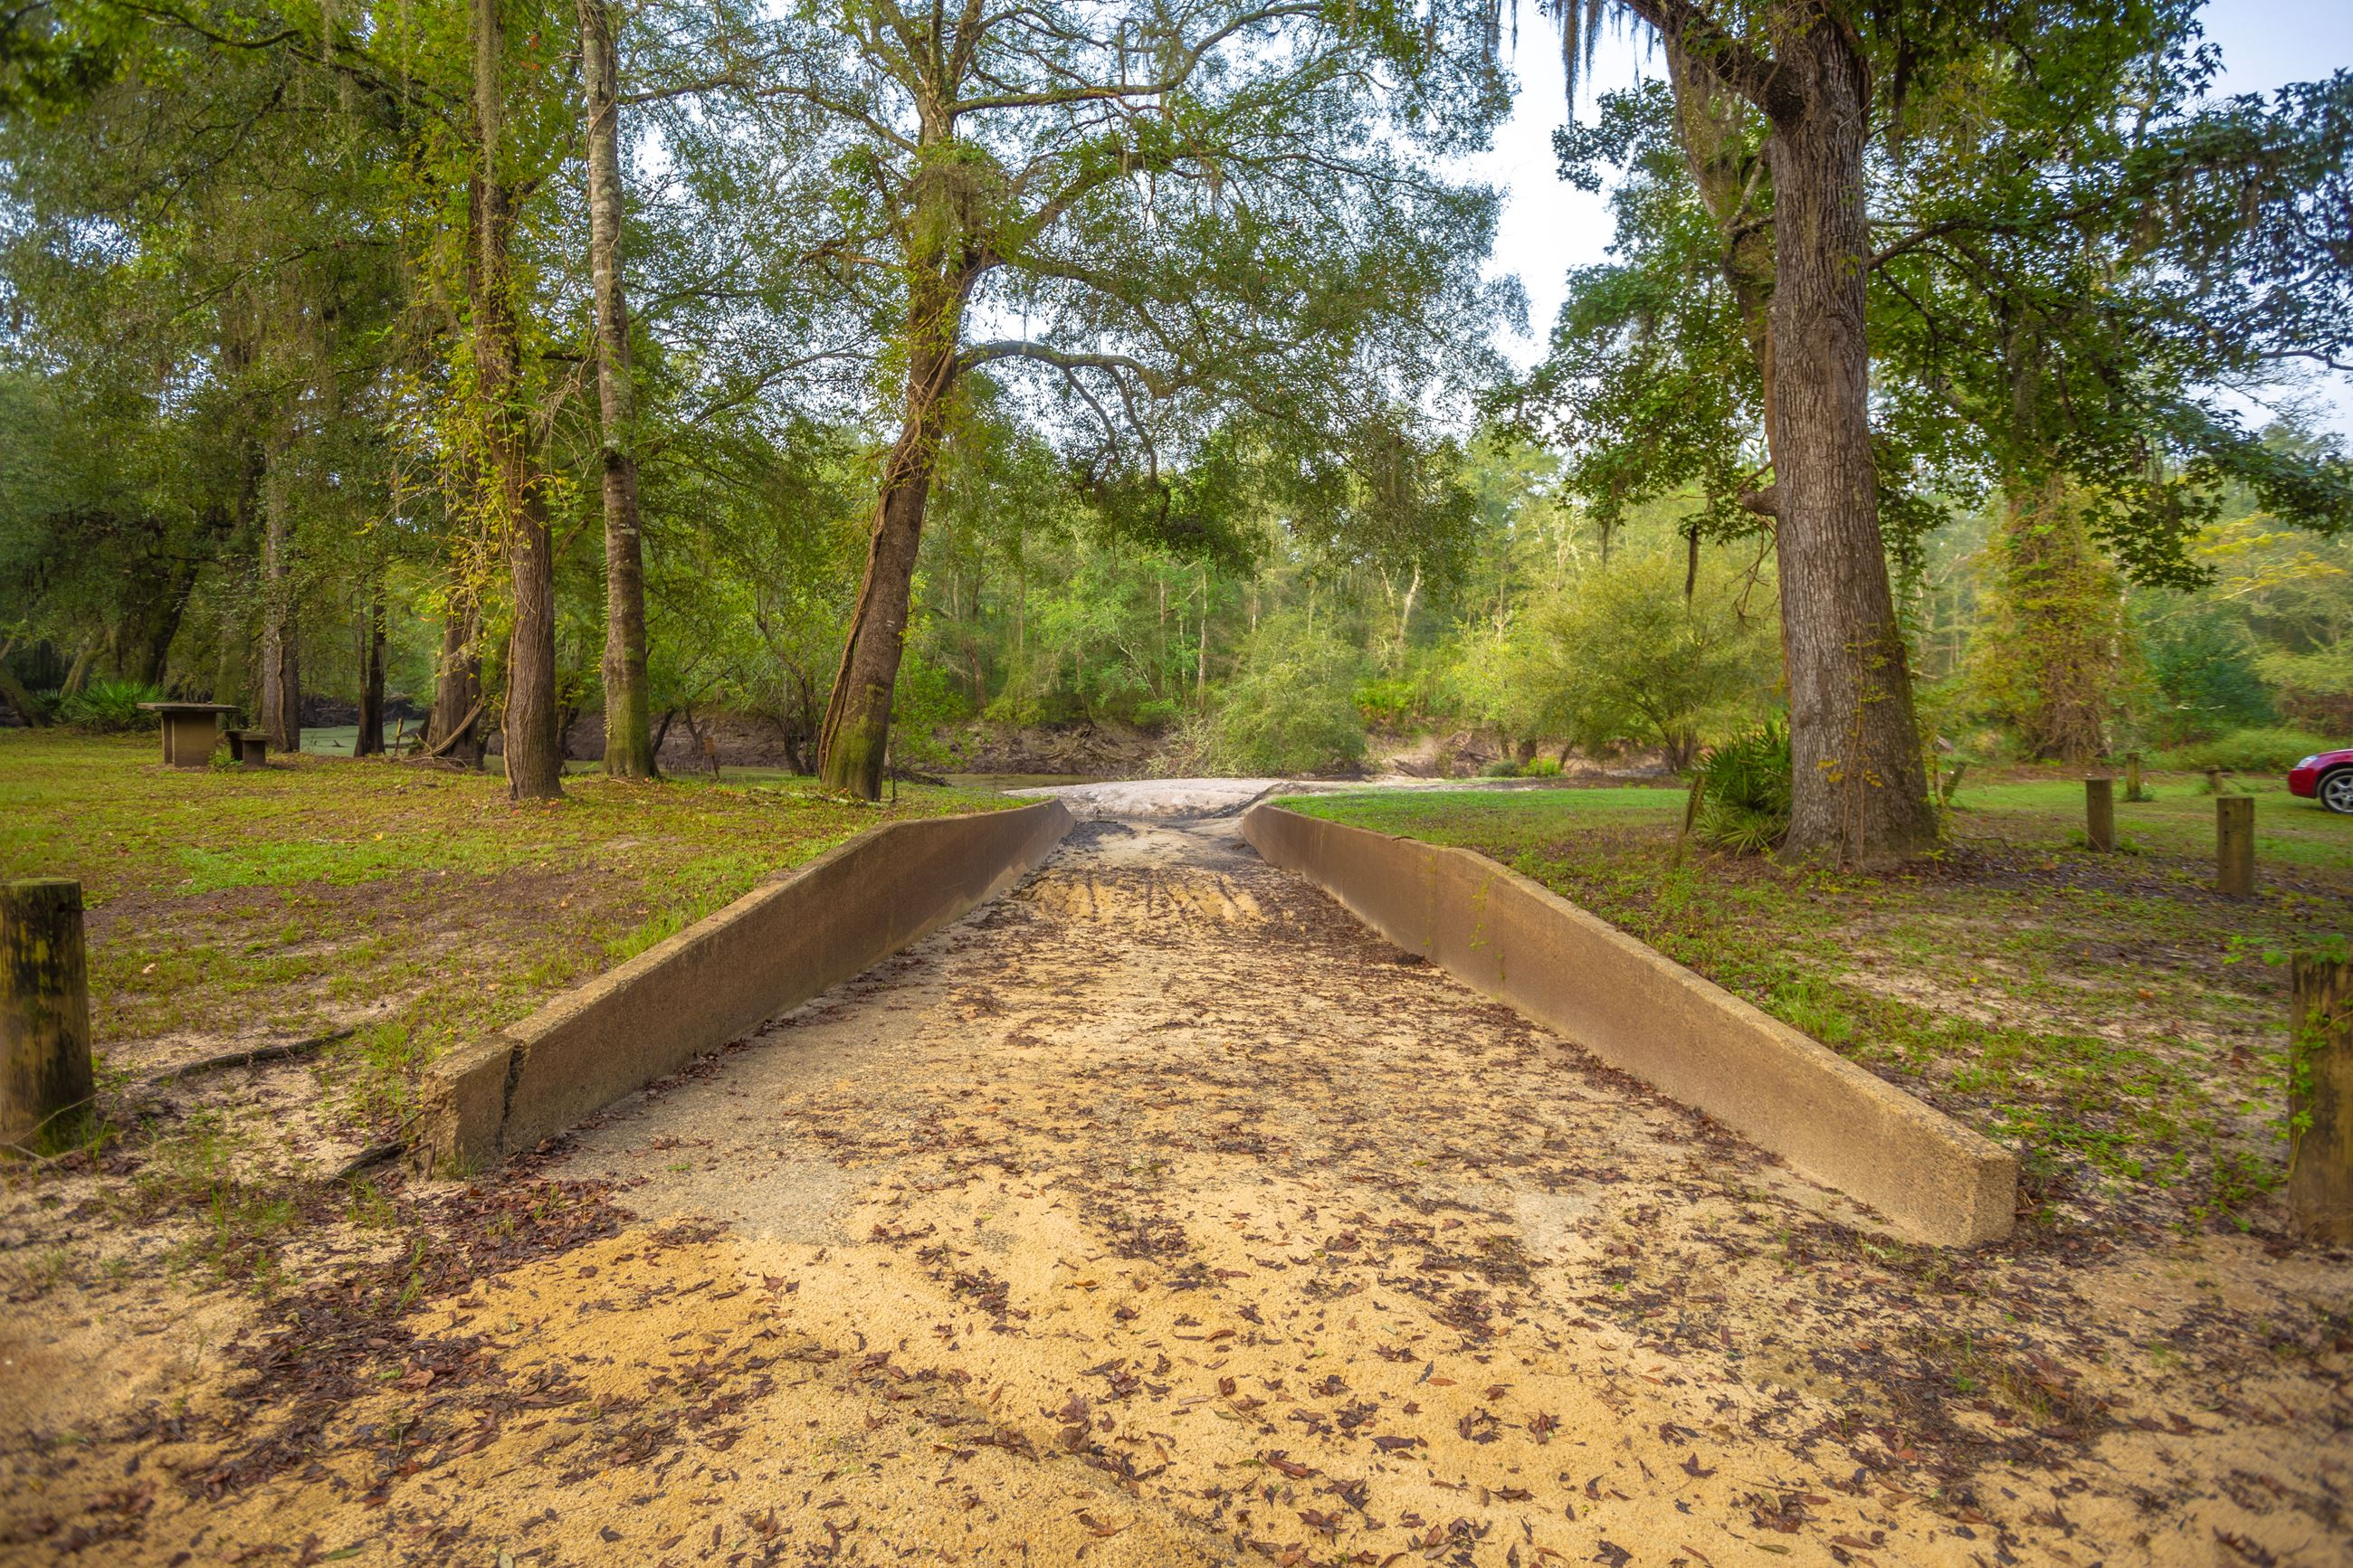 An image of a boat ramp leading to a river.